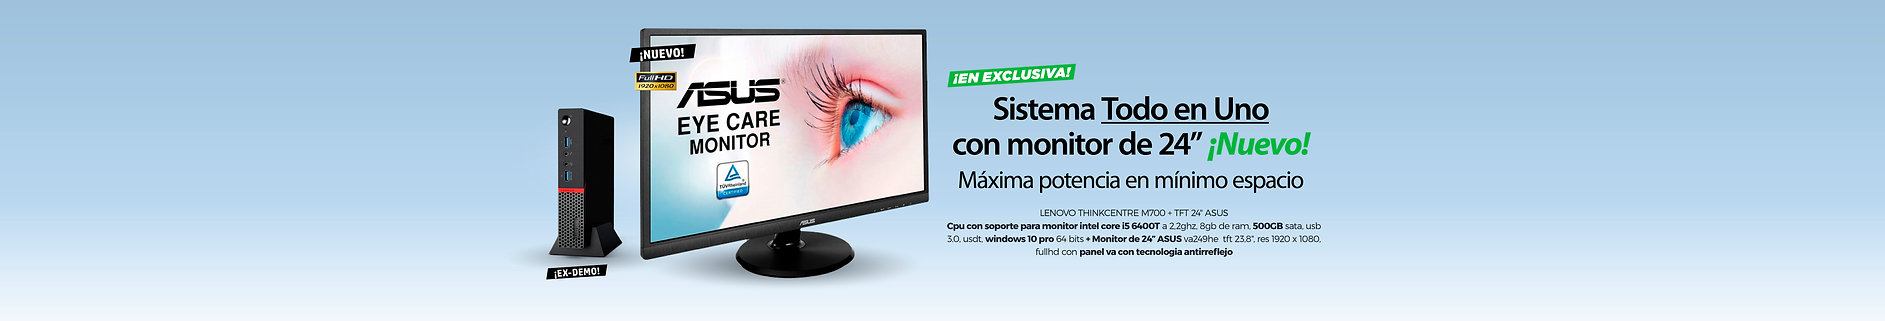 banner-all-in-two-m700-abril-2021-04.jpg